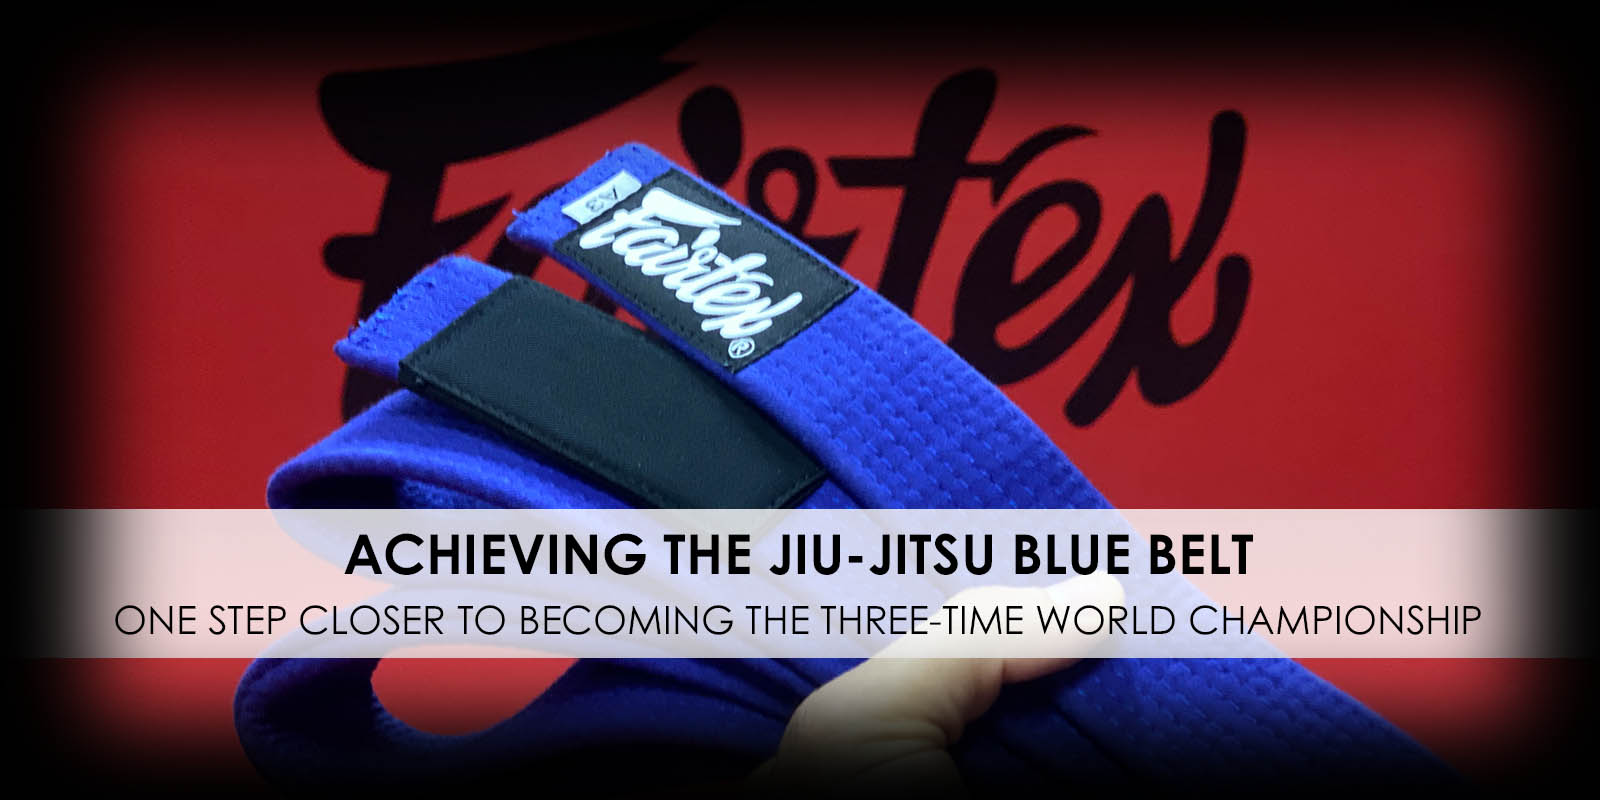 Achieving the Jiu-Jitsu blue belt